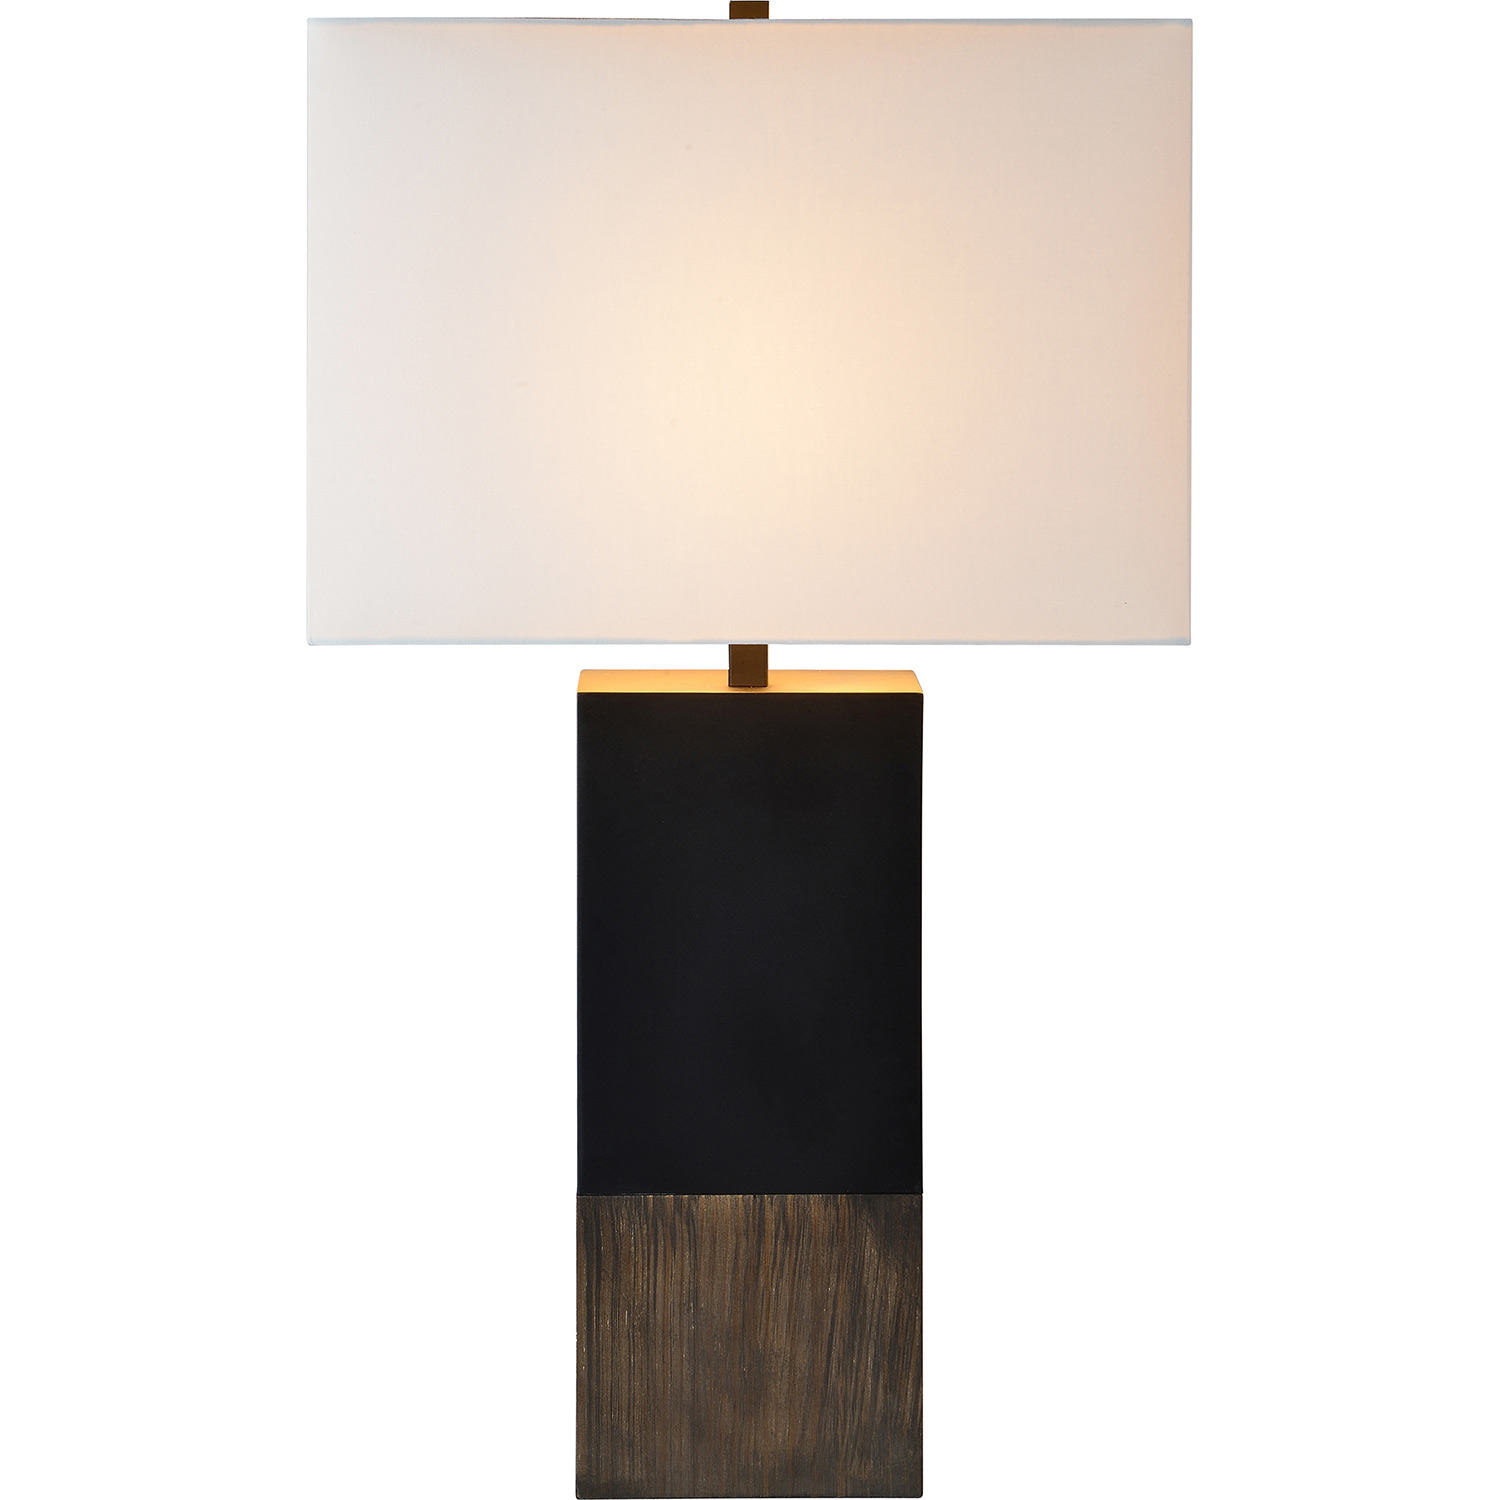 Ren-Wil Table Lamp - Natural/Matte Black